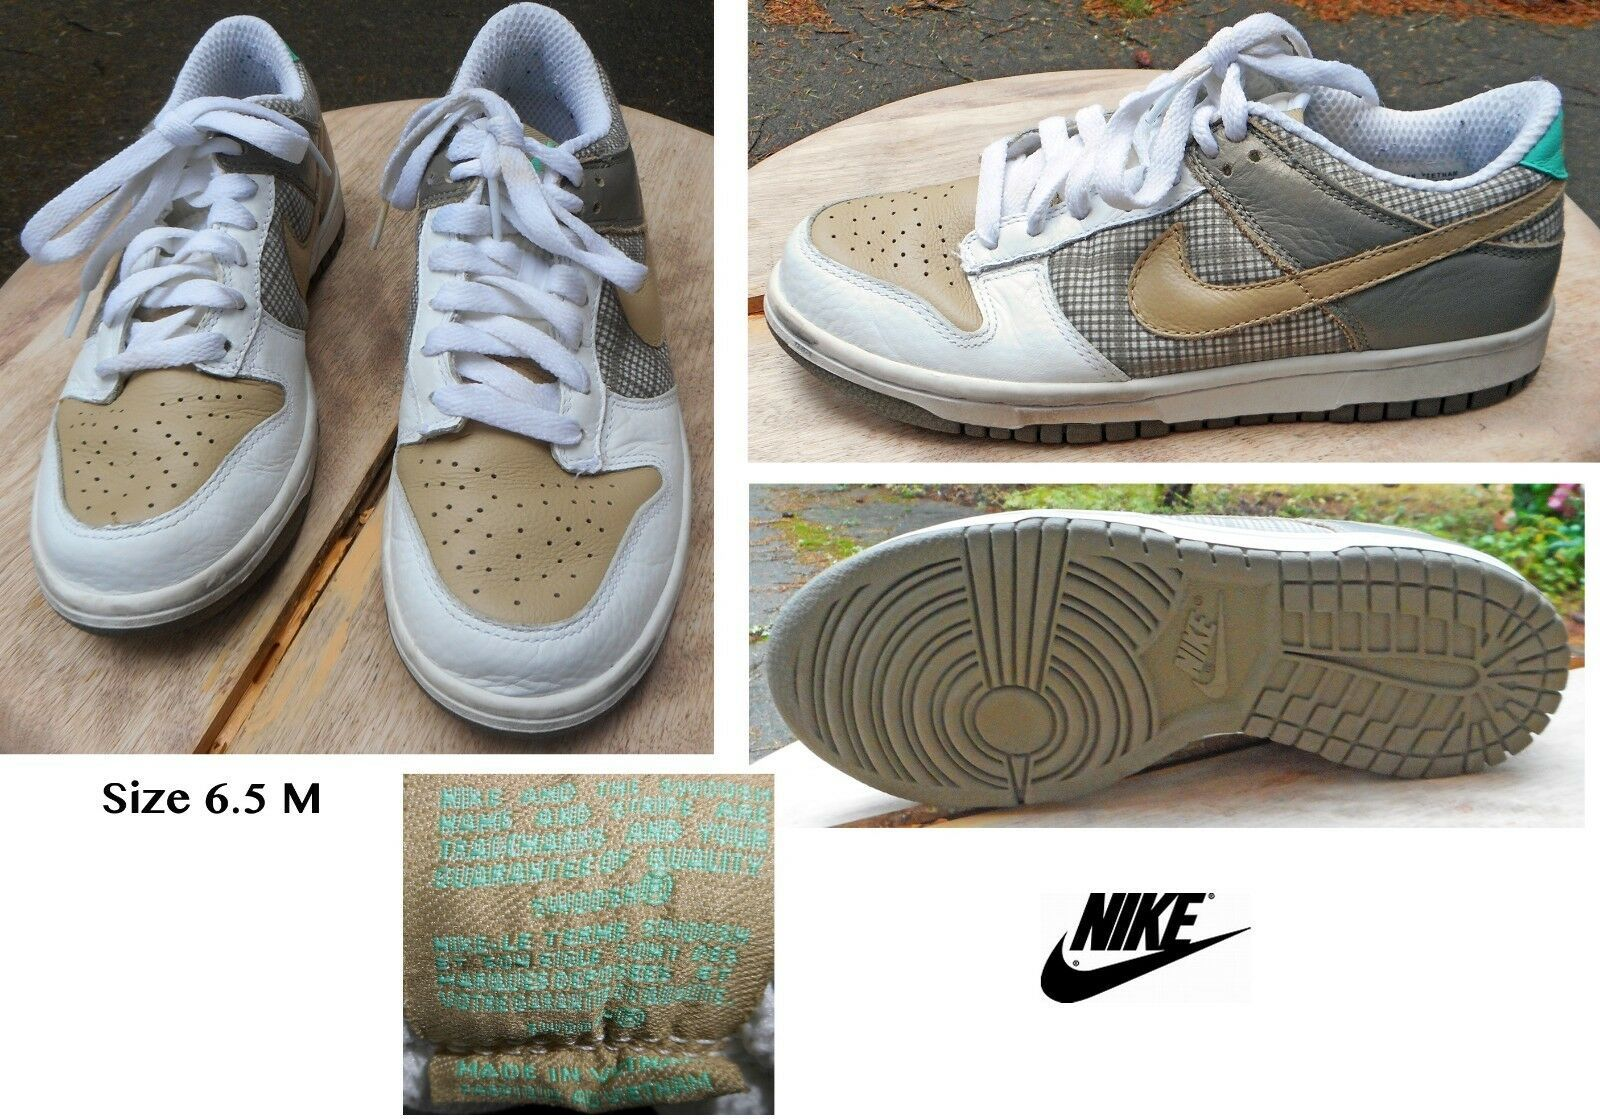 NIKE Low Dunk Shoes. White & Tan Leather w/Taupe Plaid. Size 6.5 M